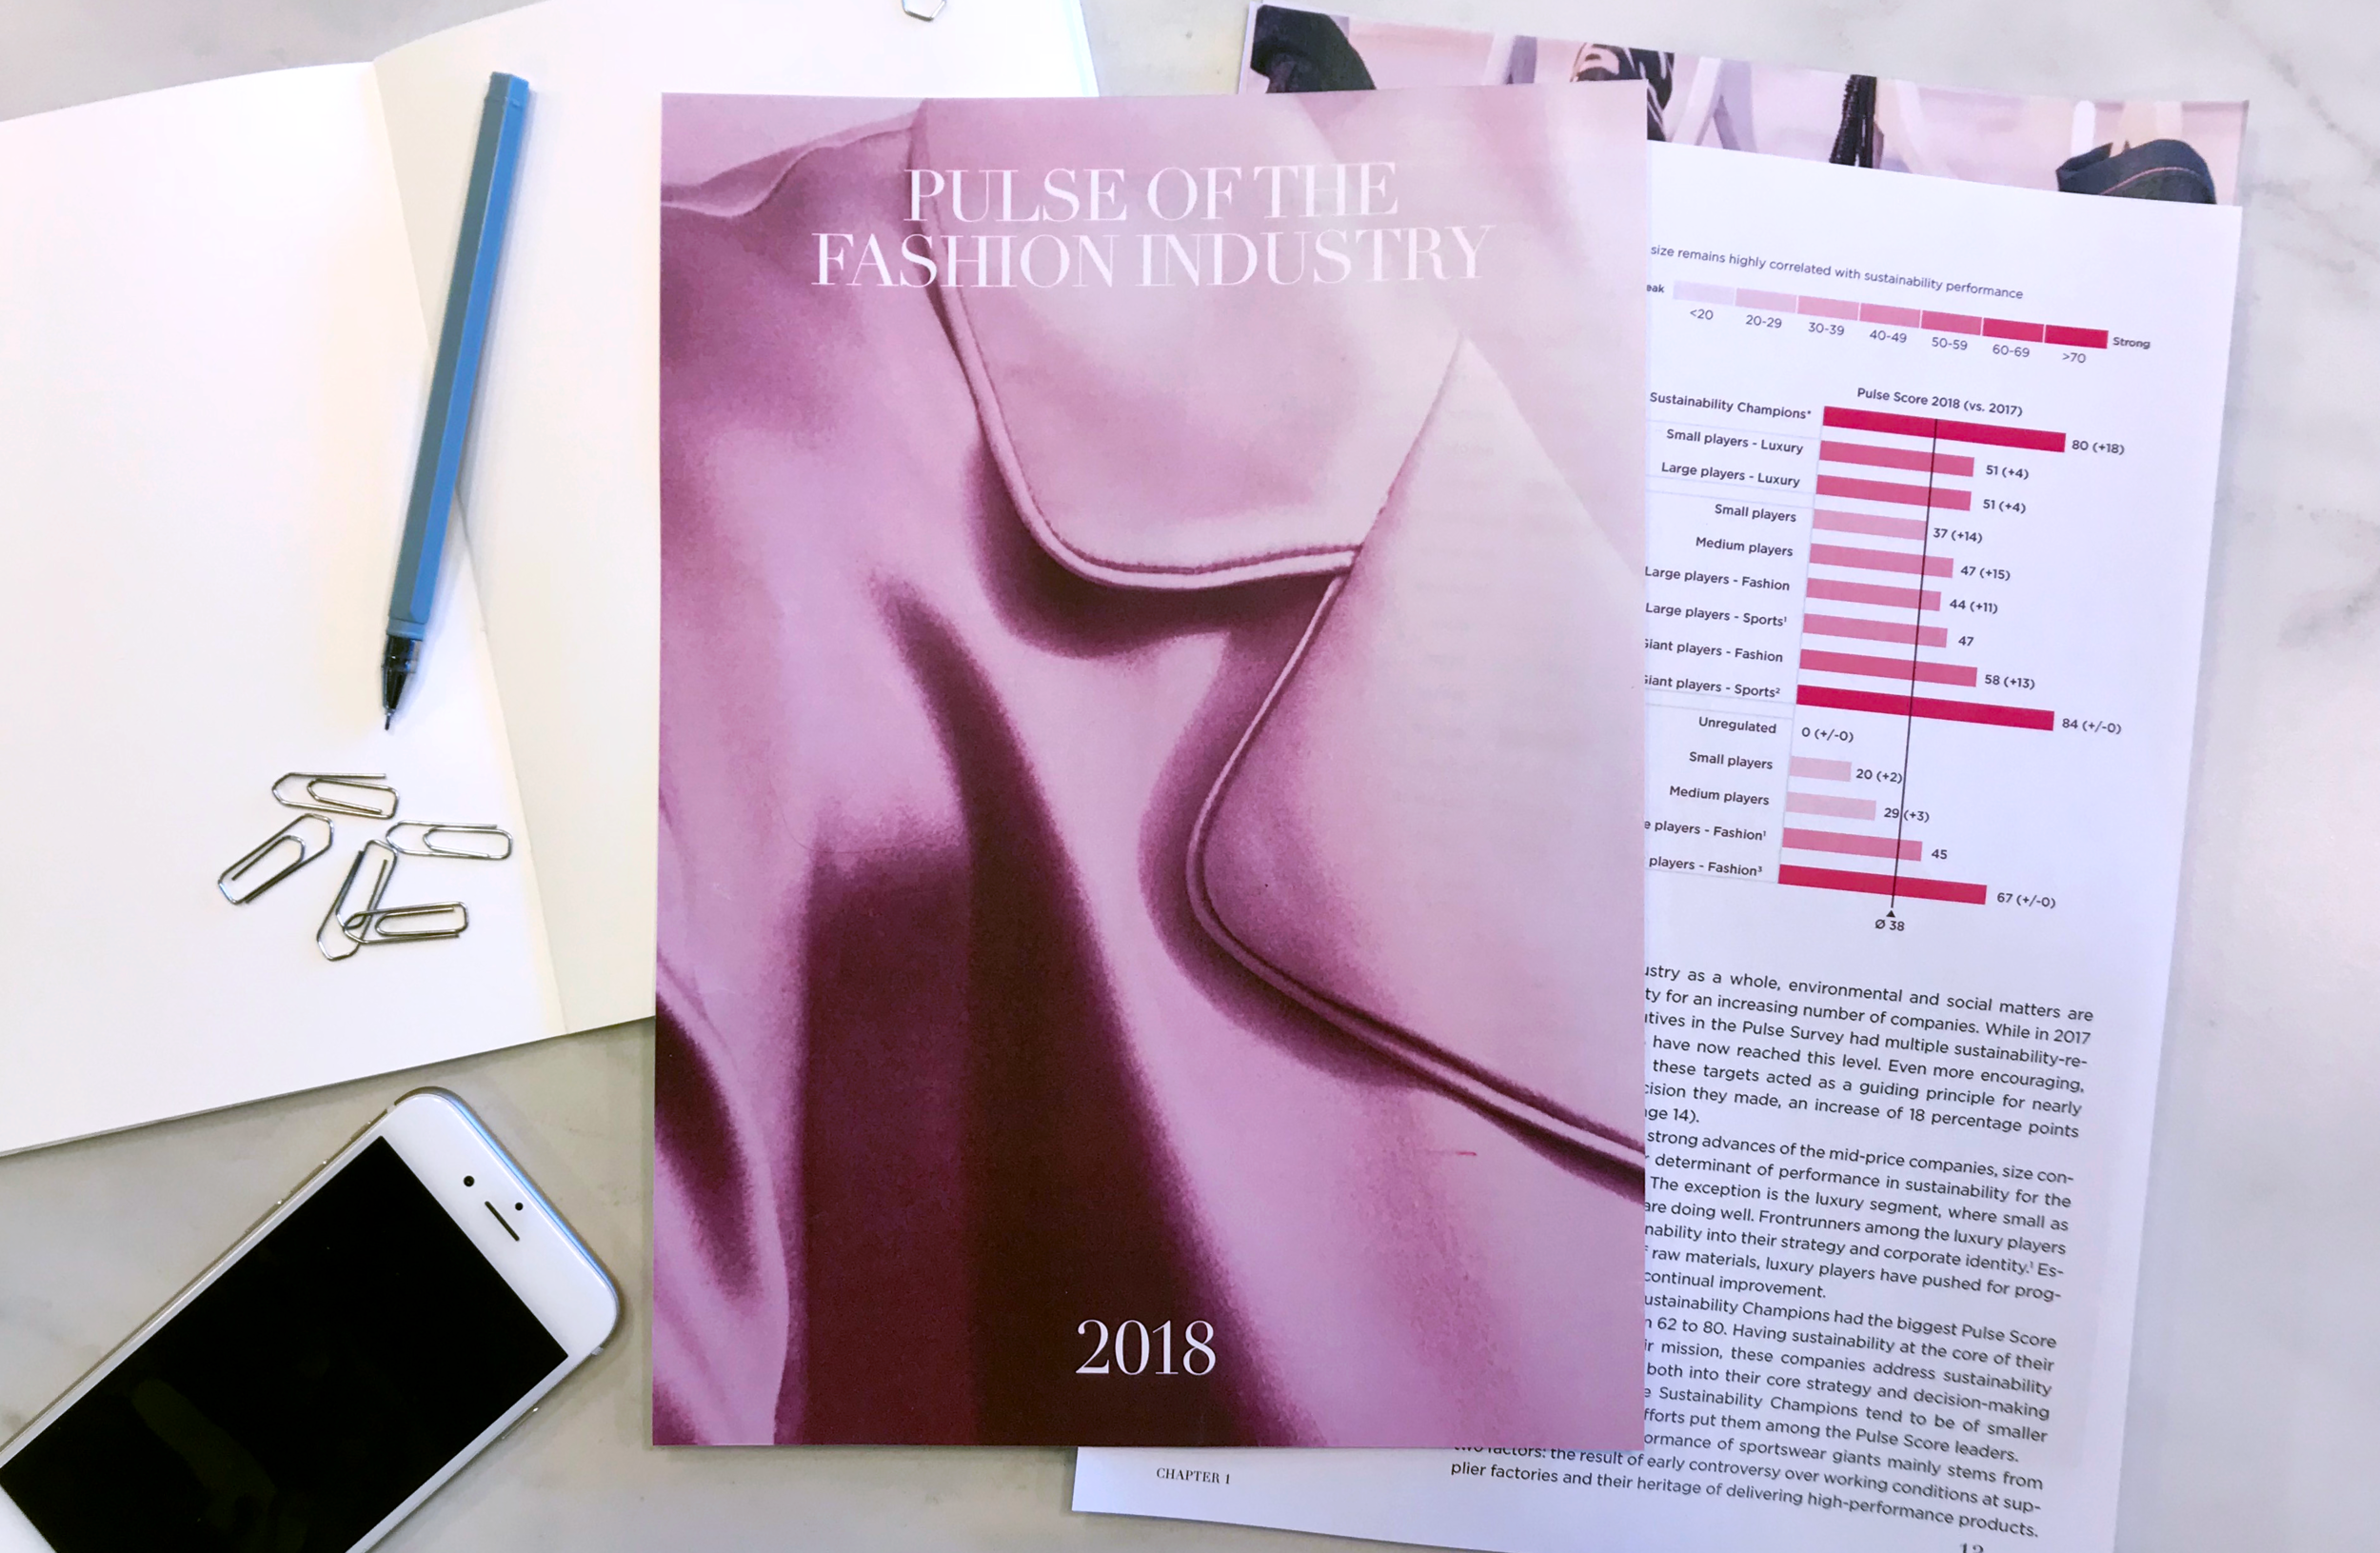 pulse_of_the_fashion_industry_2018_report